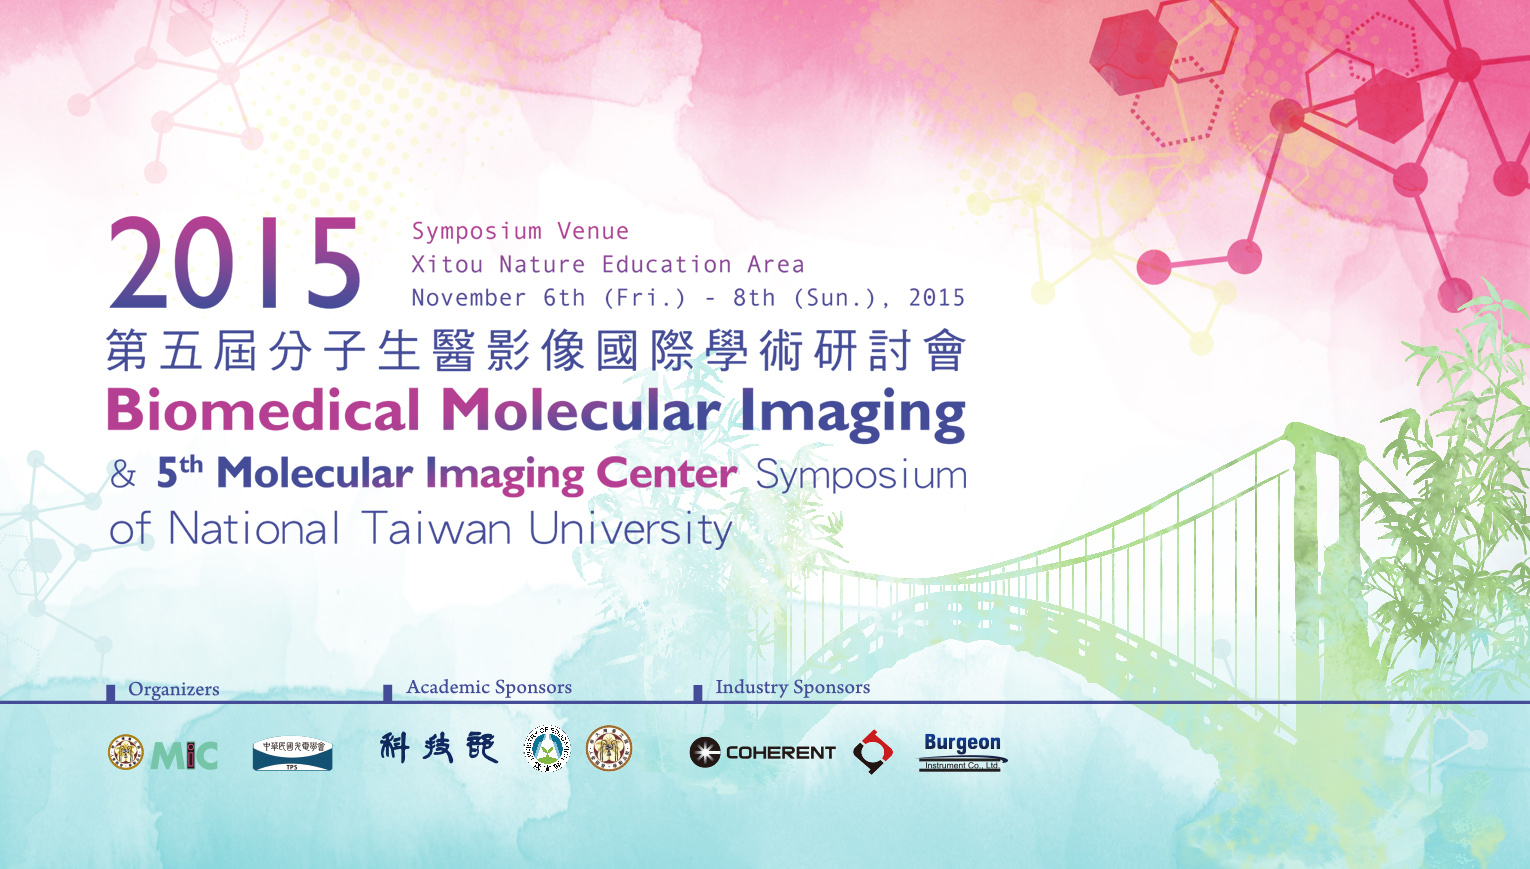 2015 Biomedical Molecular Imaging & 5th Molecular Imaging Center Symposium of National Taiwan University